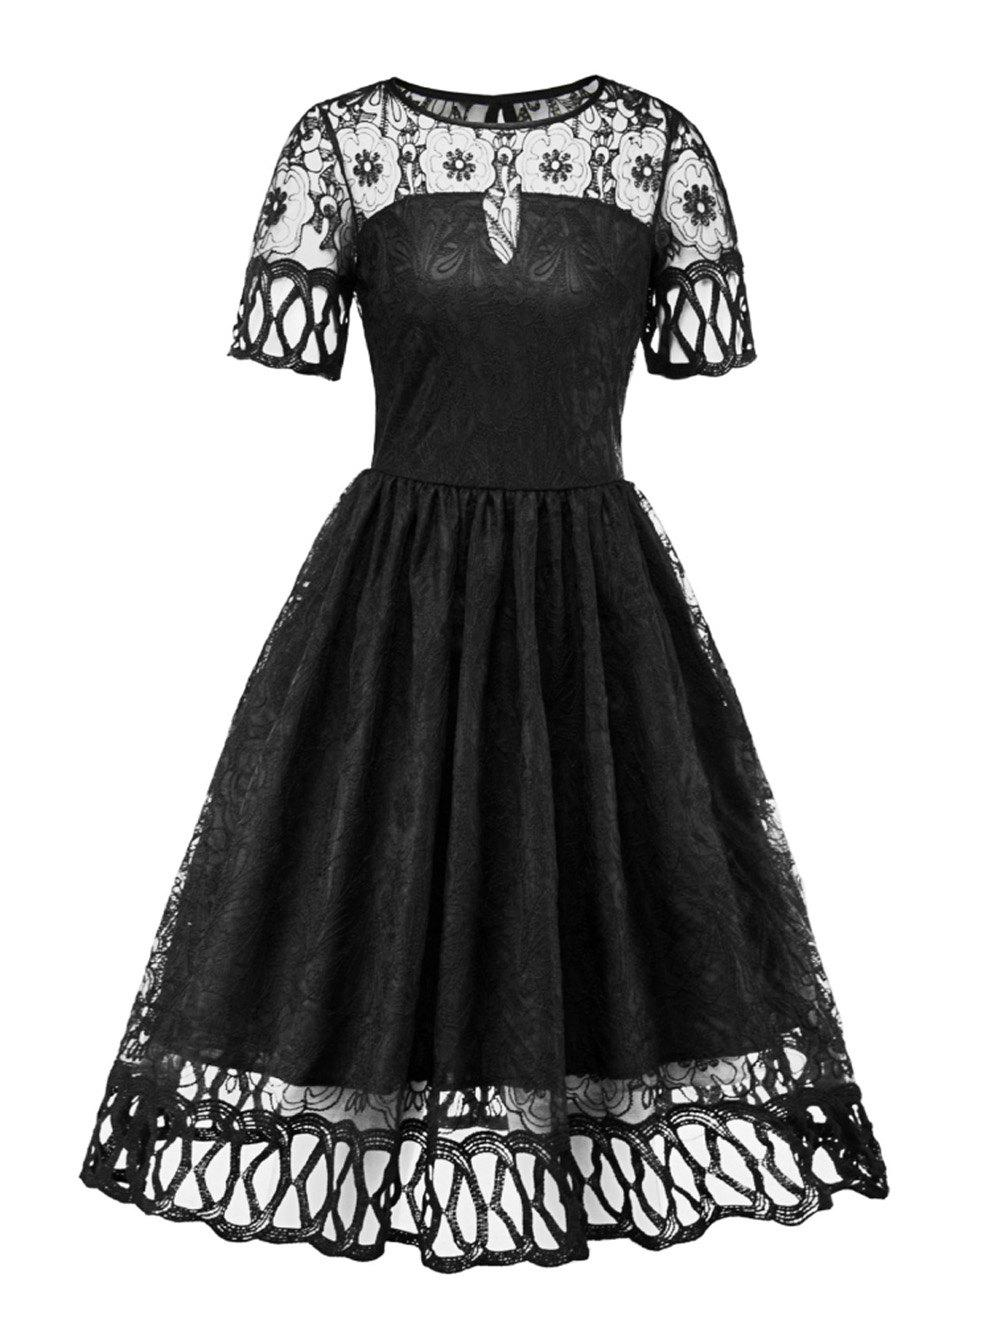 Unique Hepburn Vintage Series Women Dress Spring And Summer Round Neck Hollow Out Lace-stitching Design Short Sleeve Corset Retro Dress